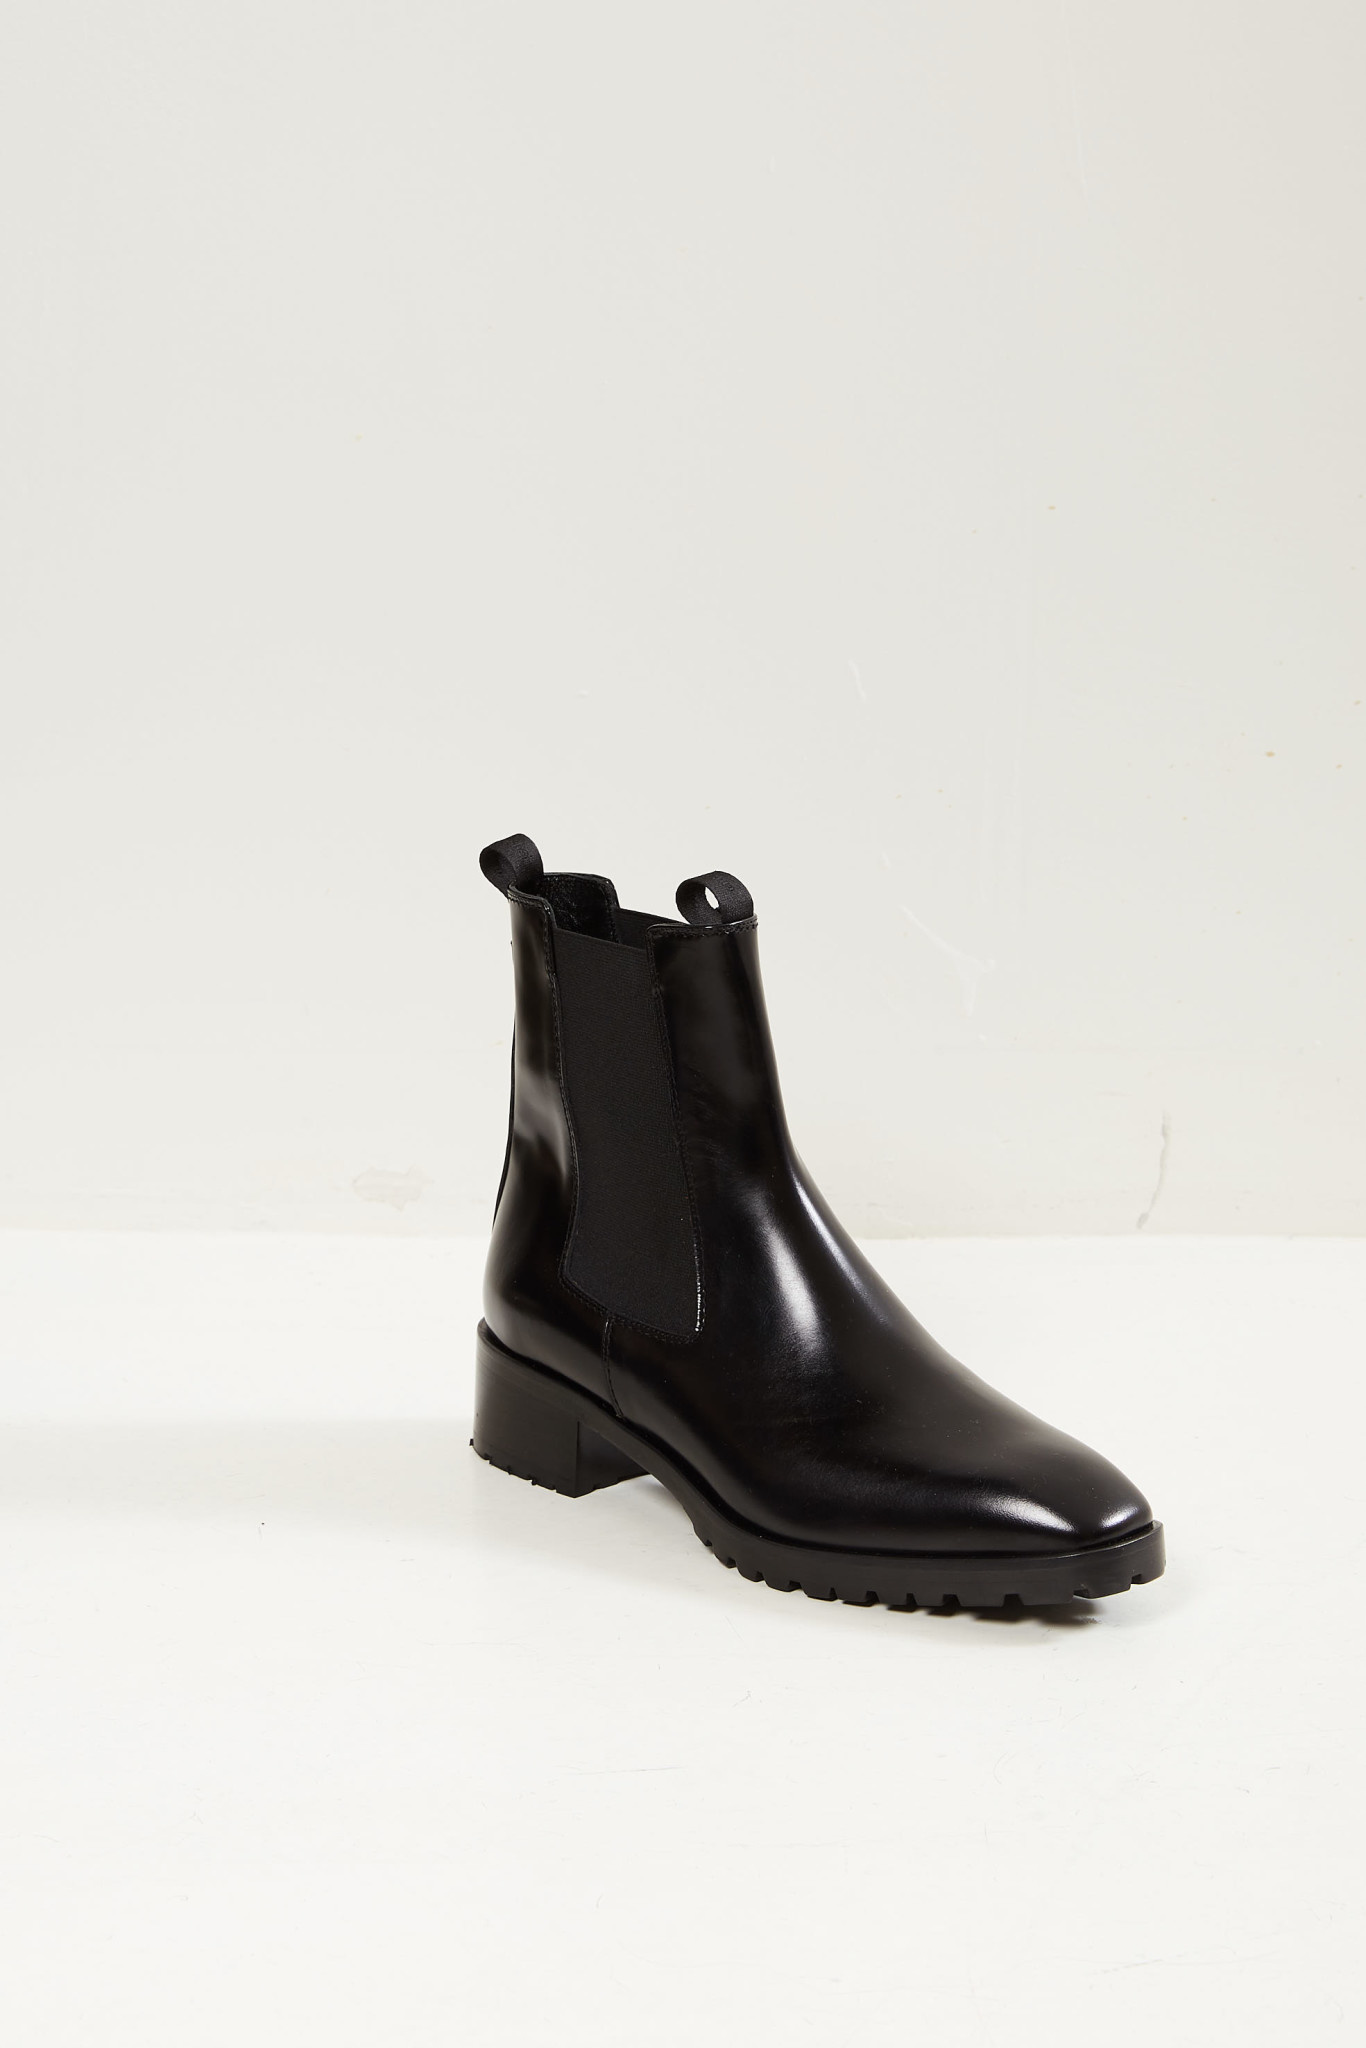 Aeyde Karlo Chelsea boots.